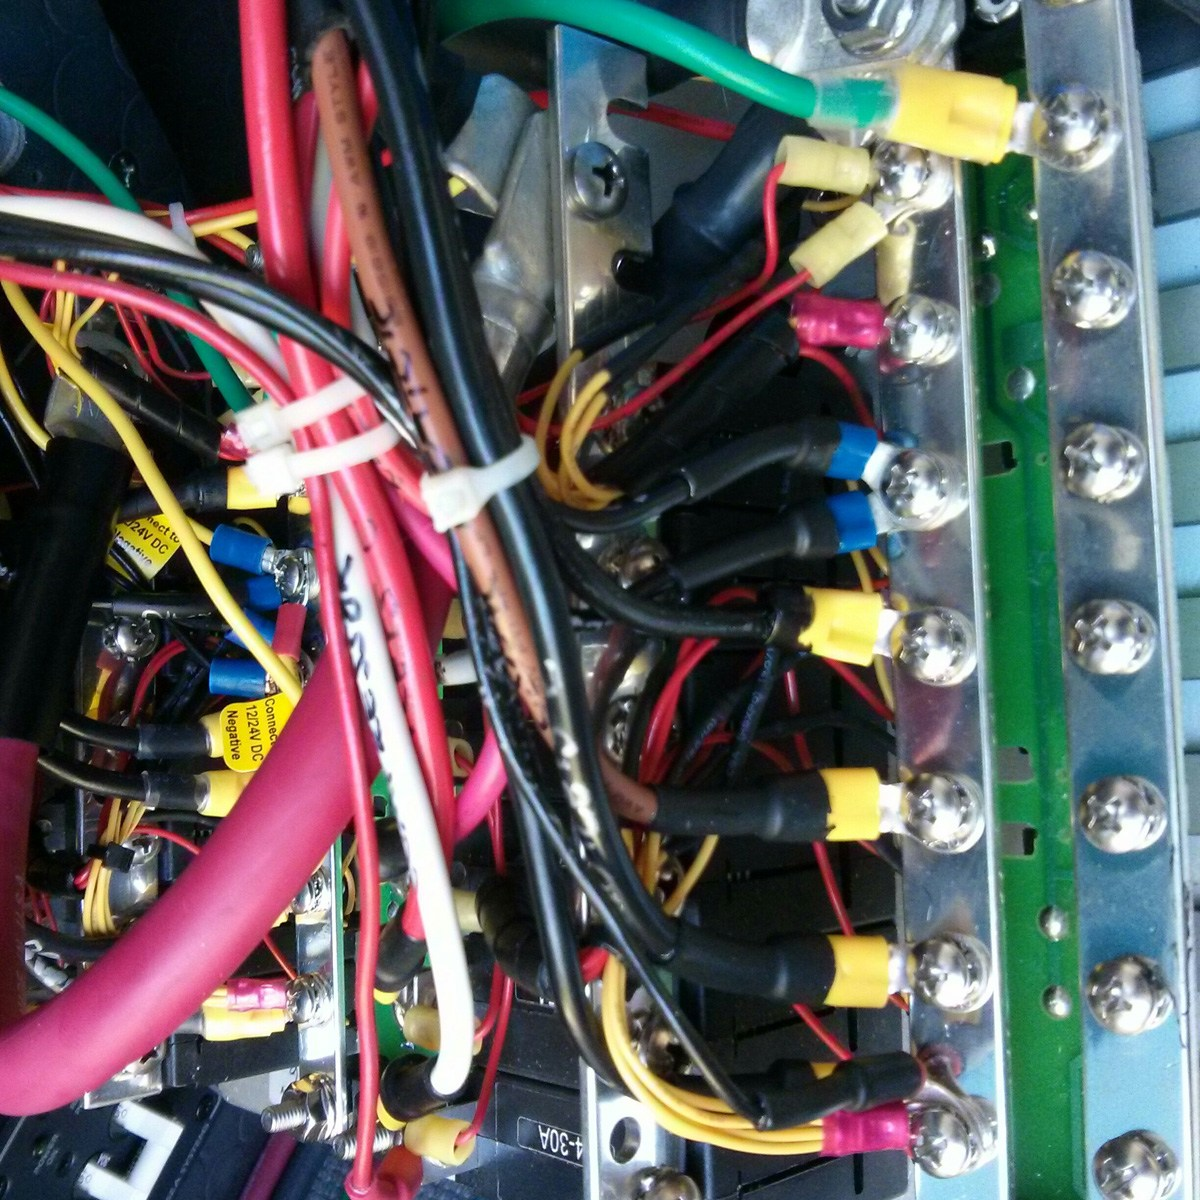 12 volt distribution panel wiring